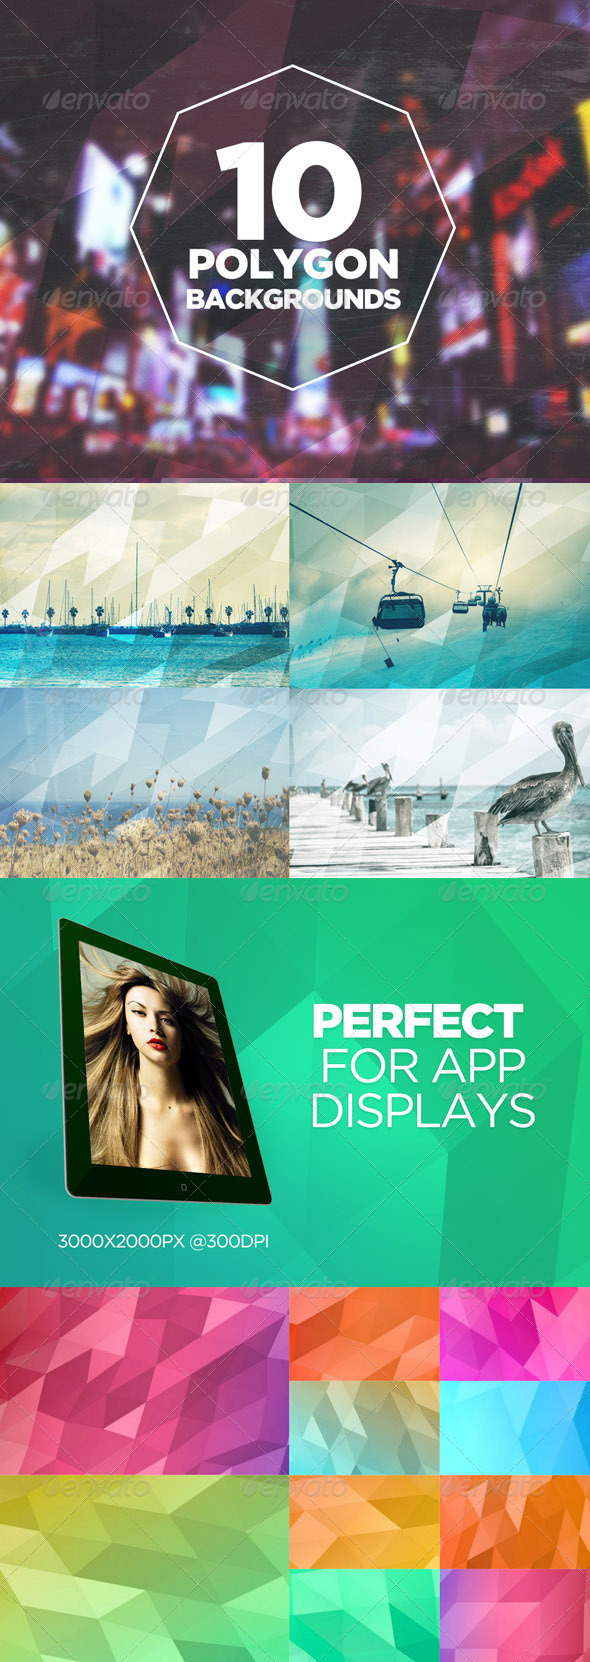 GraphicRiver 10 Polygon Backgrounds 7659623